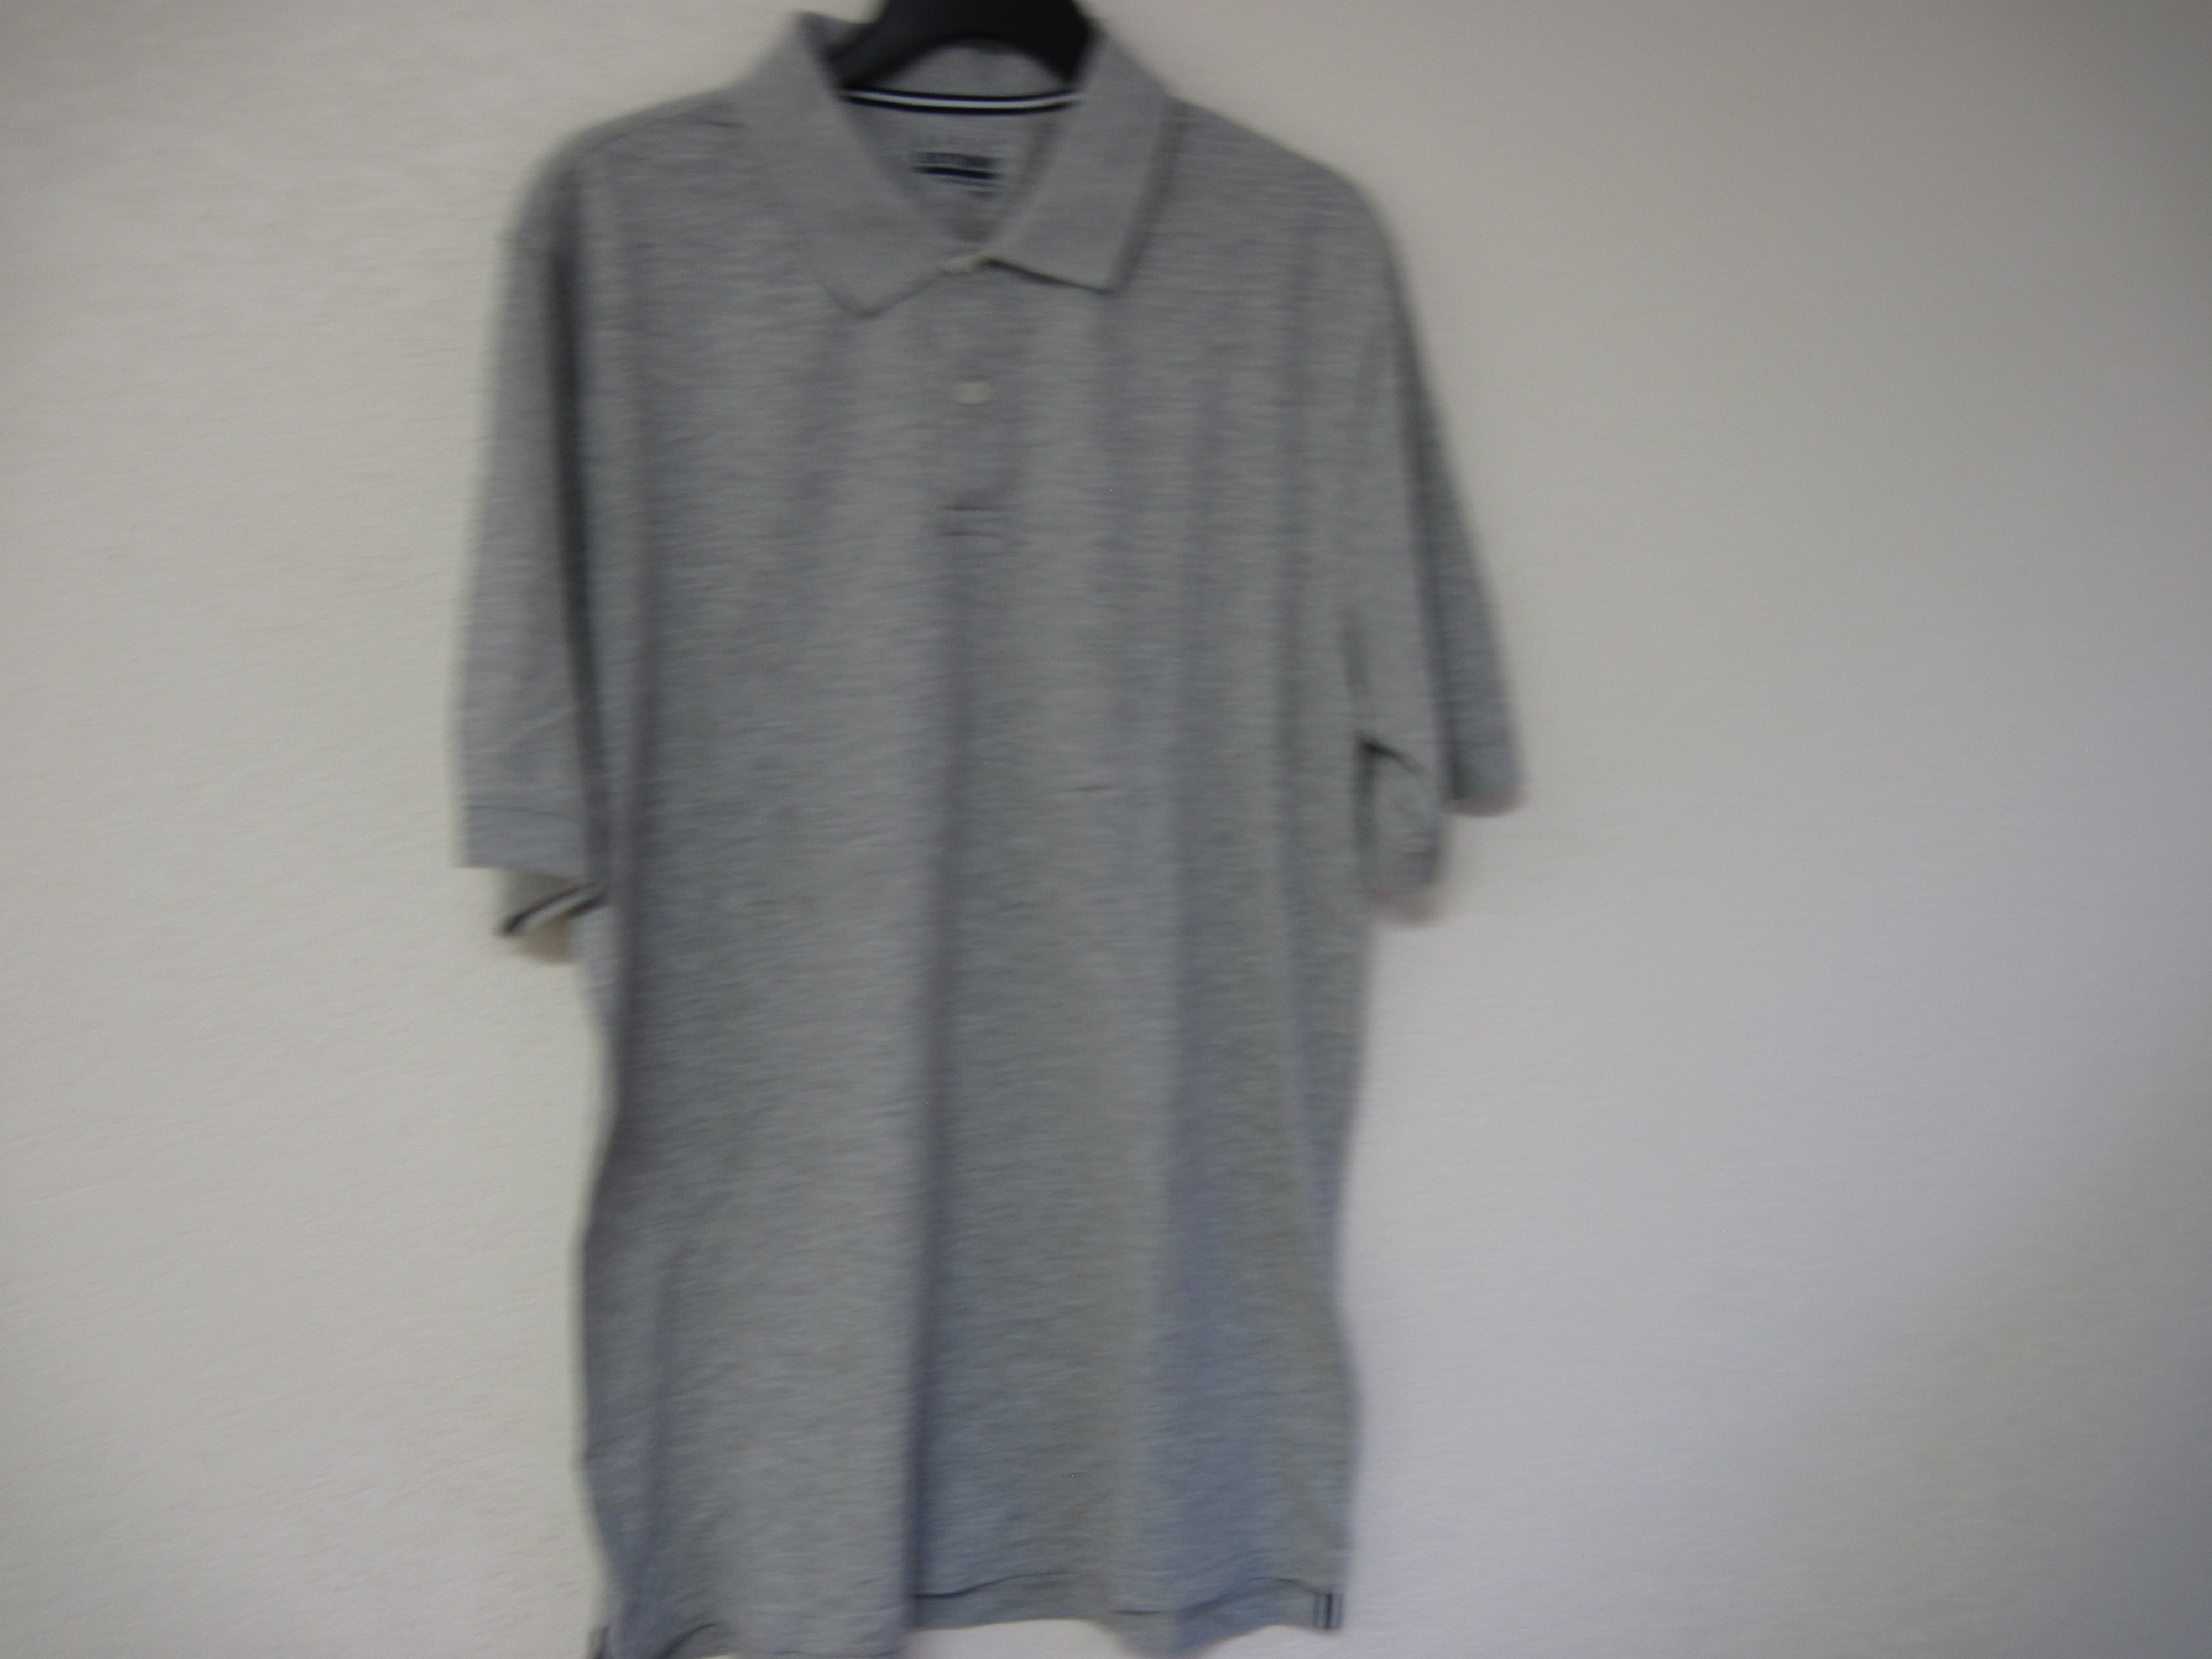 Basic Editions Sz M Polo Shirt (Gray)